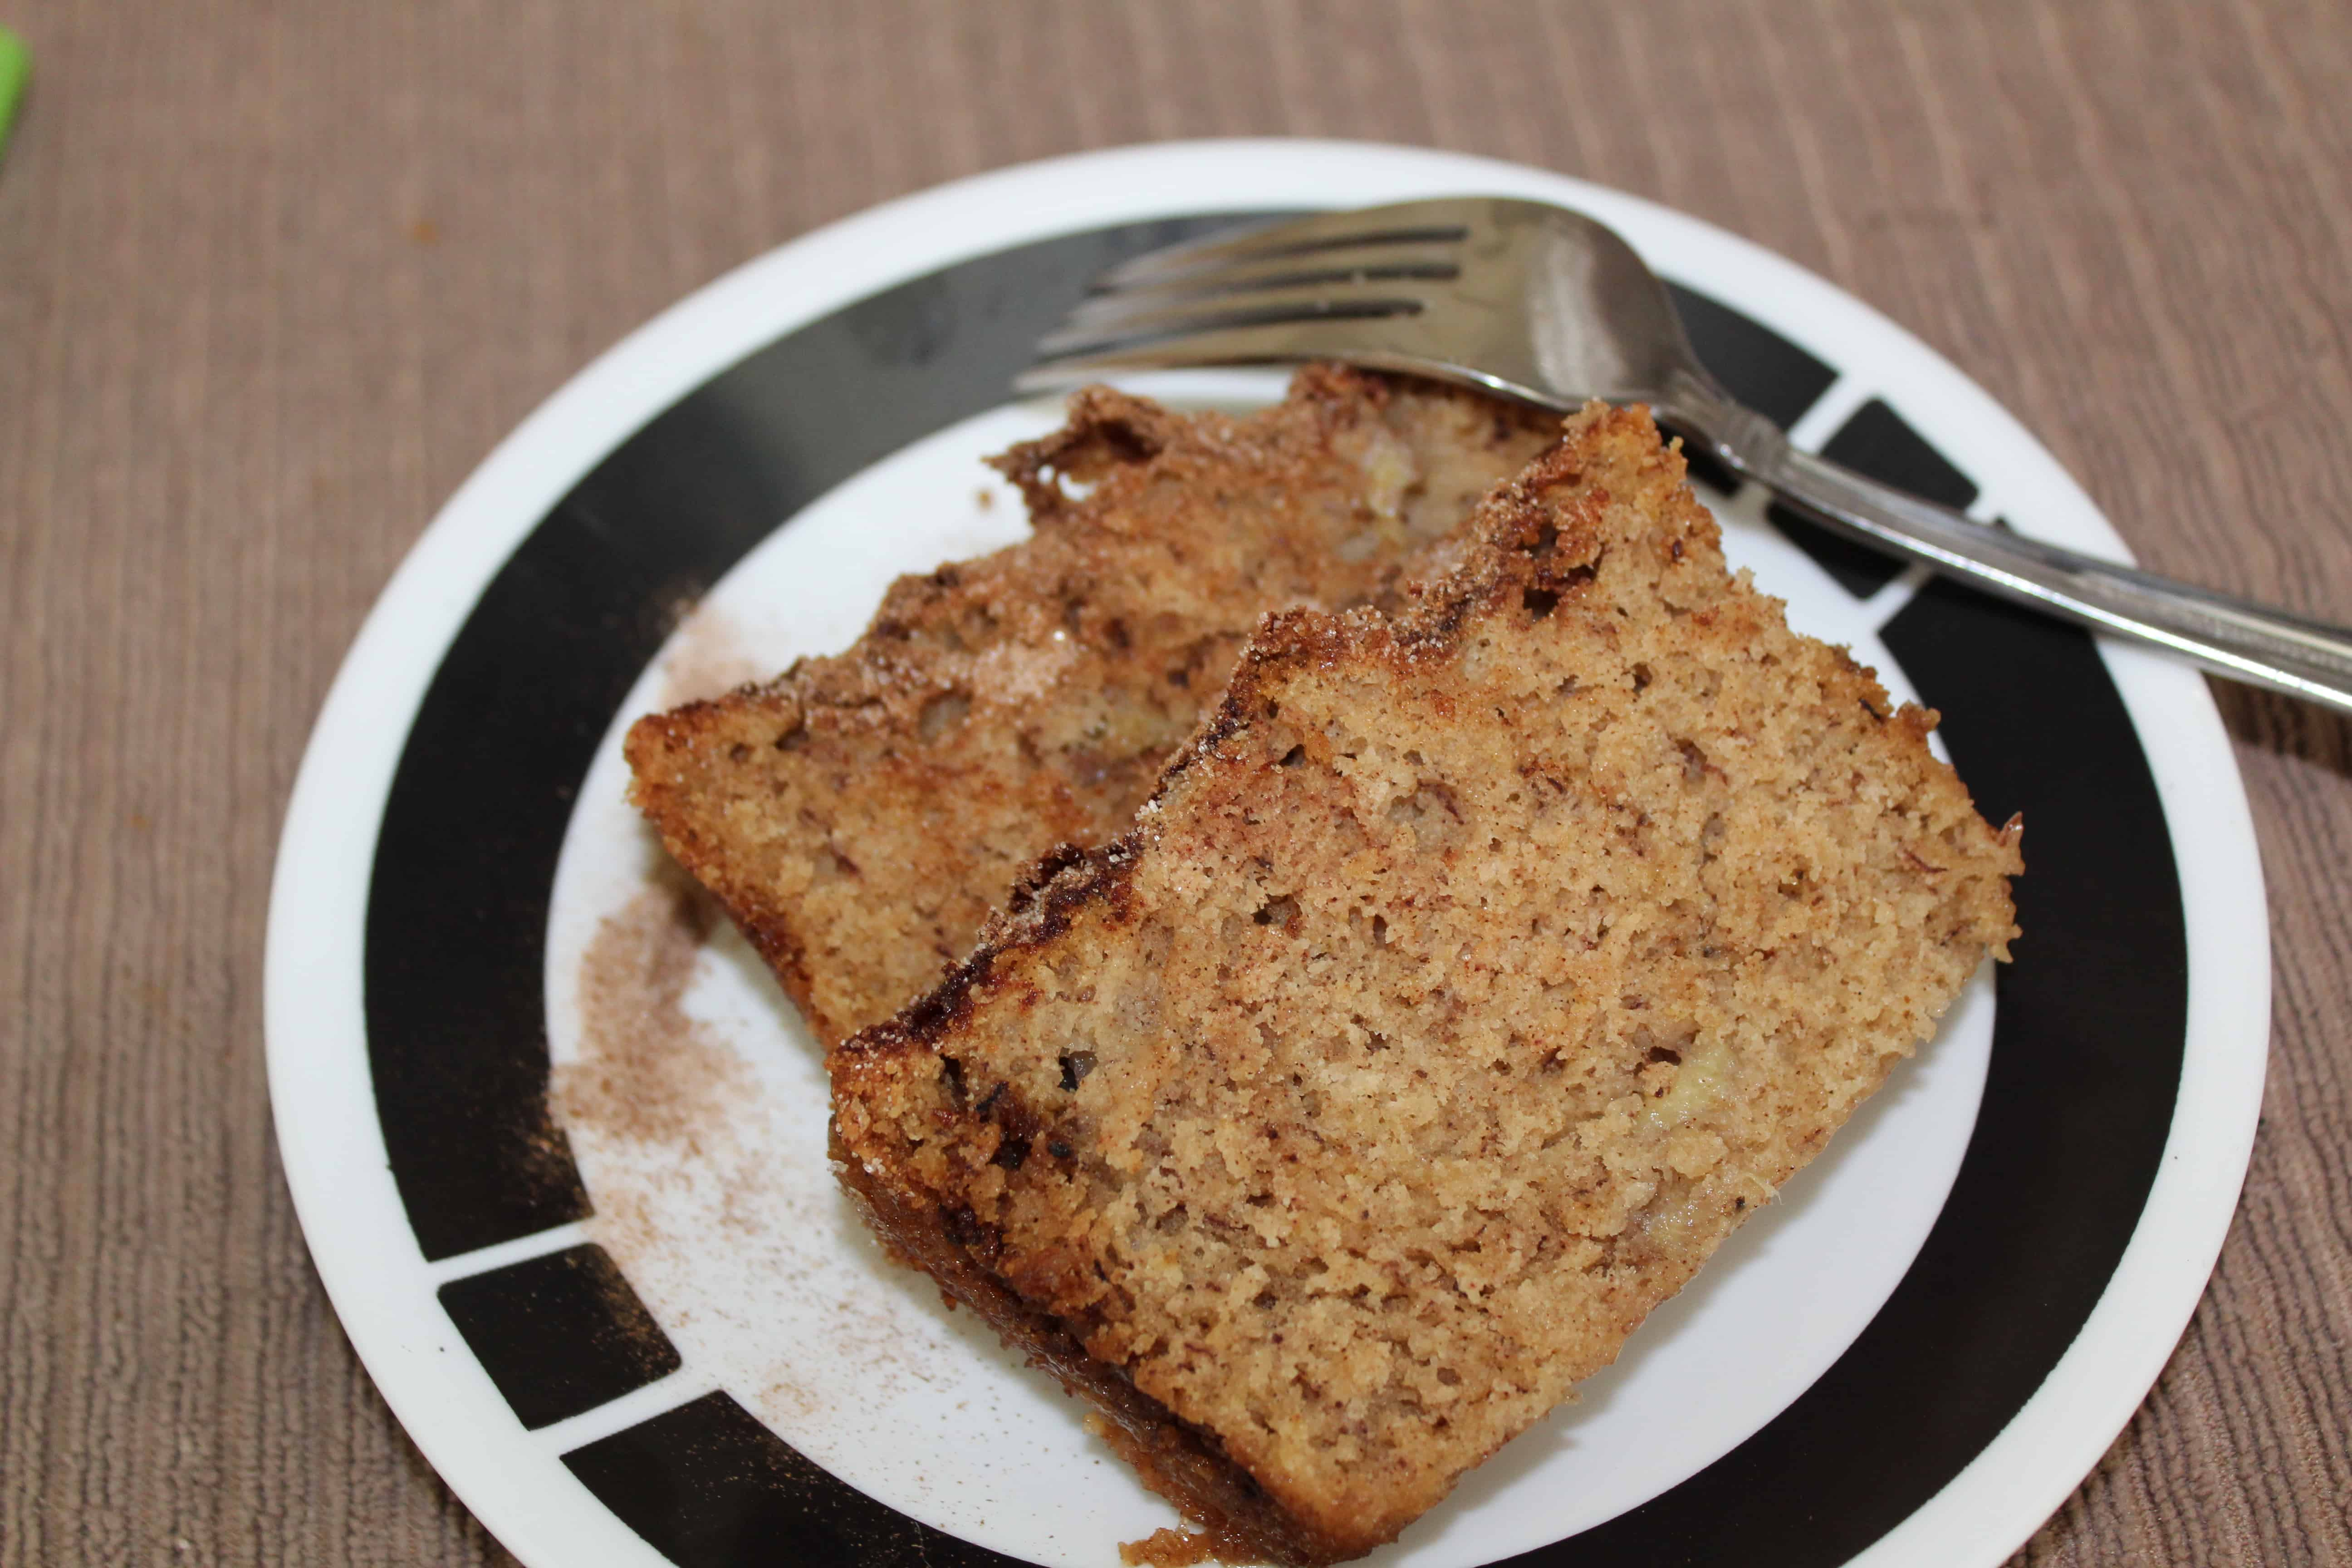 Two slices of banana bread on a plate.